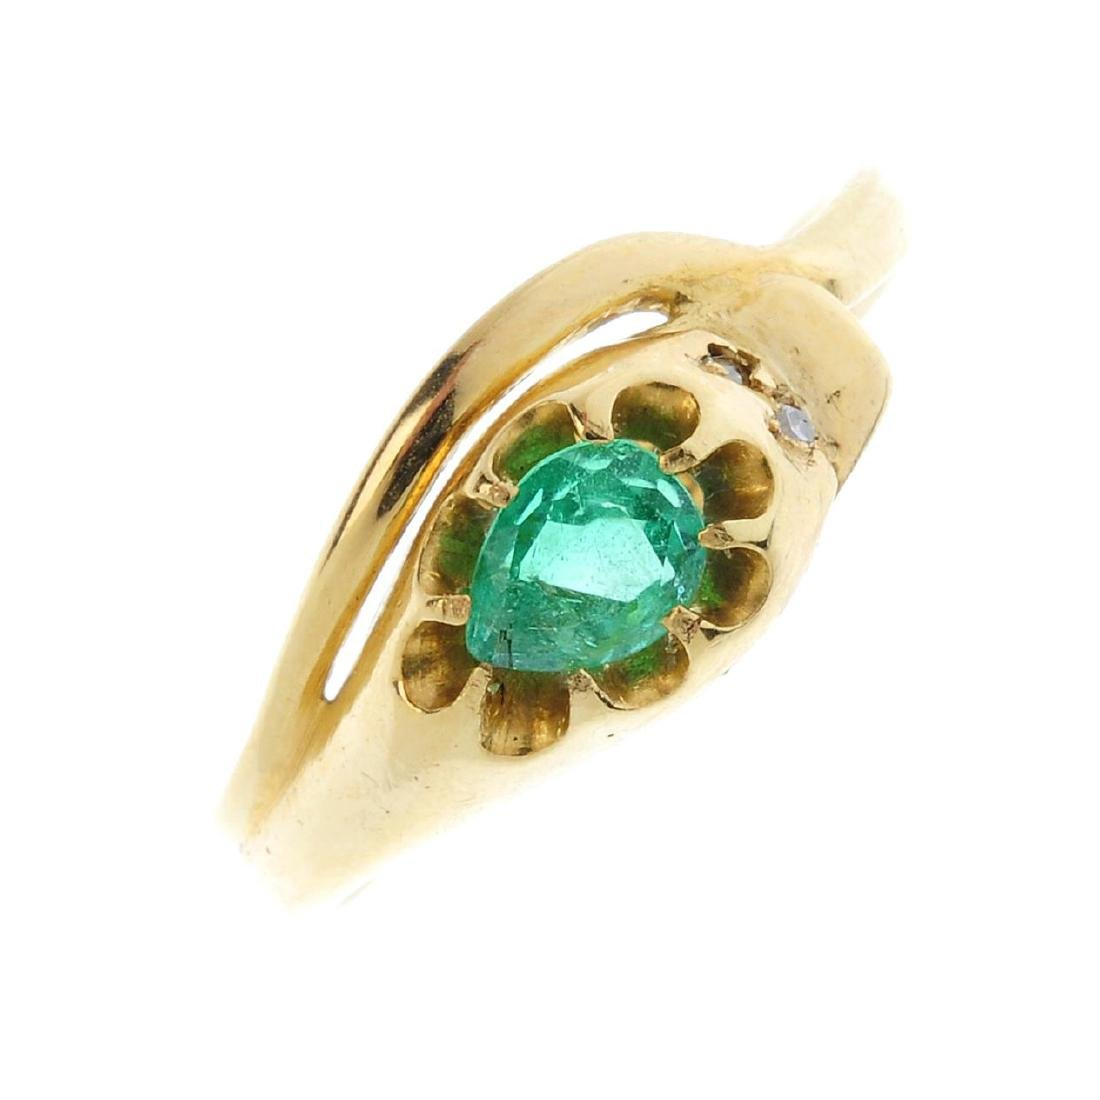 An emerald snake ring. Designed as a coiled snake, with